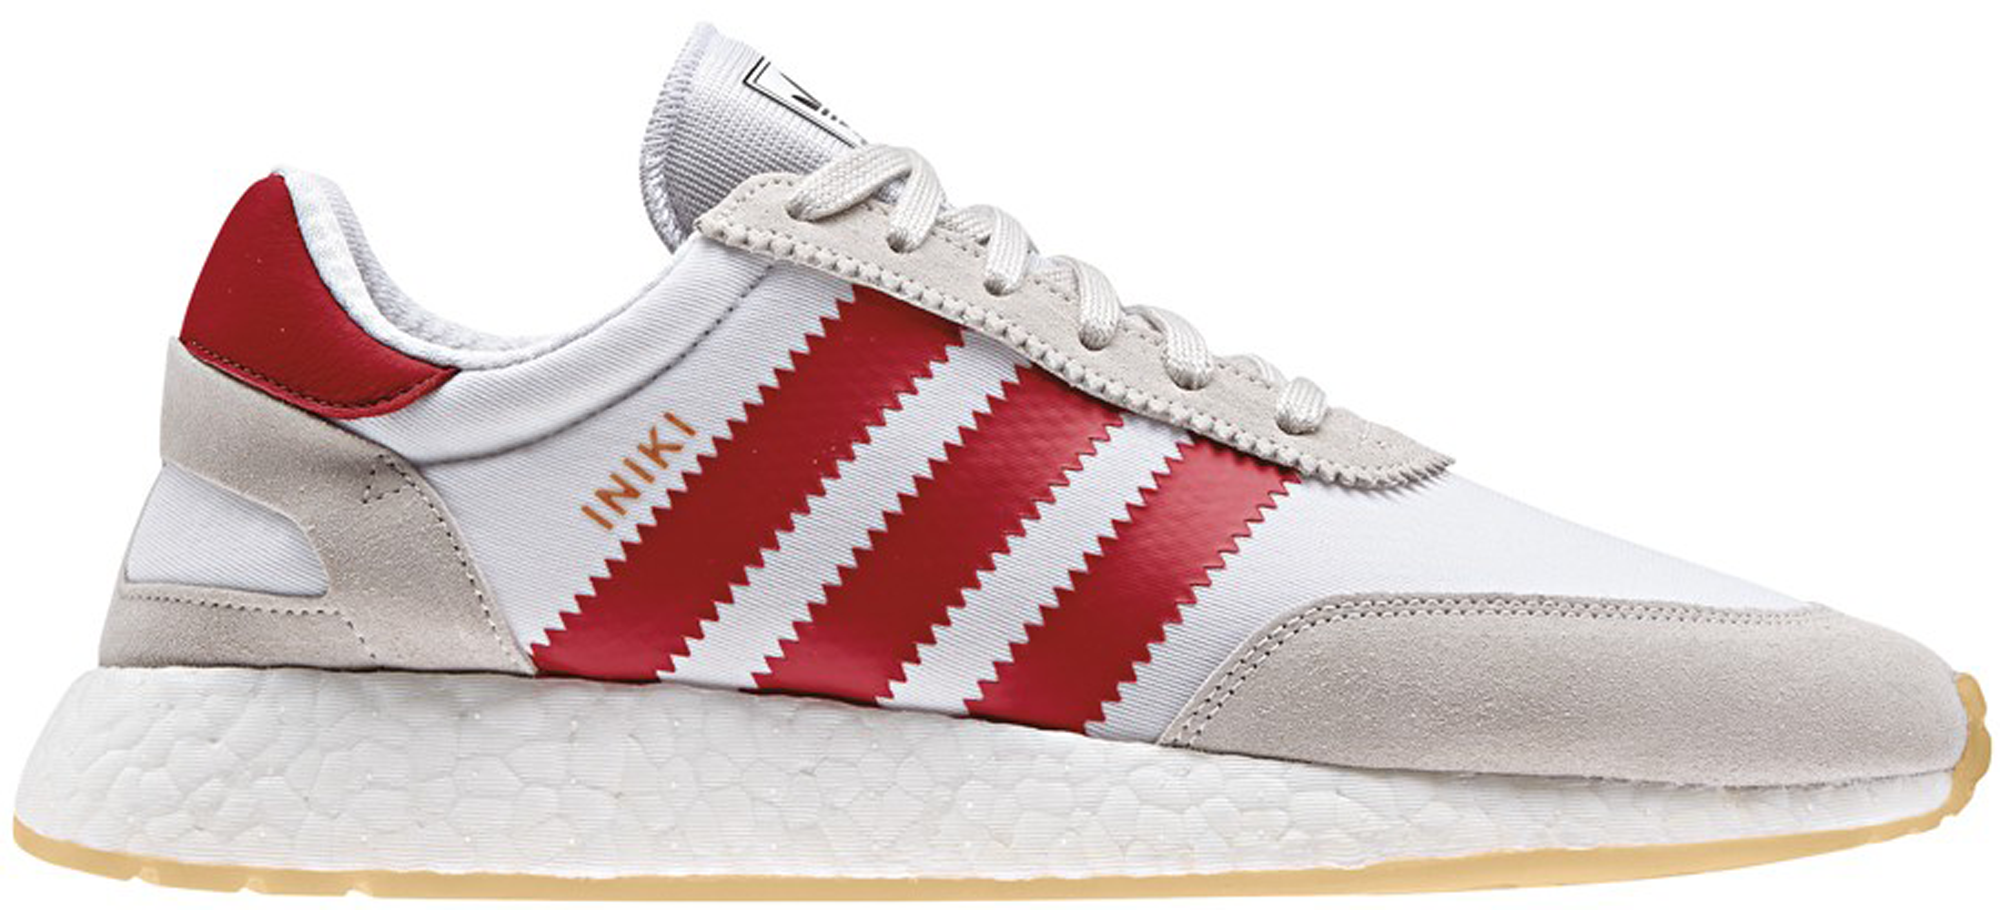 adidas Iniki Runner White Red Gum